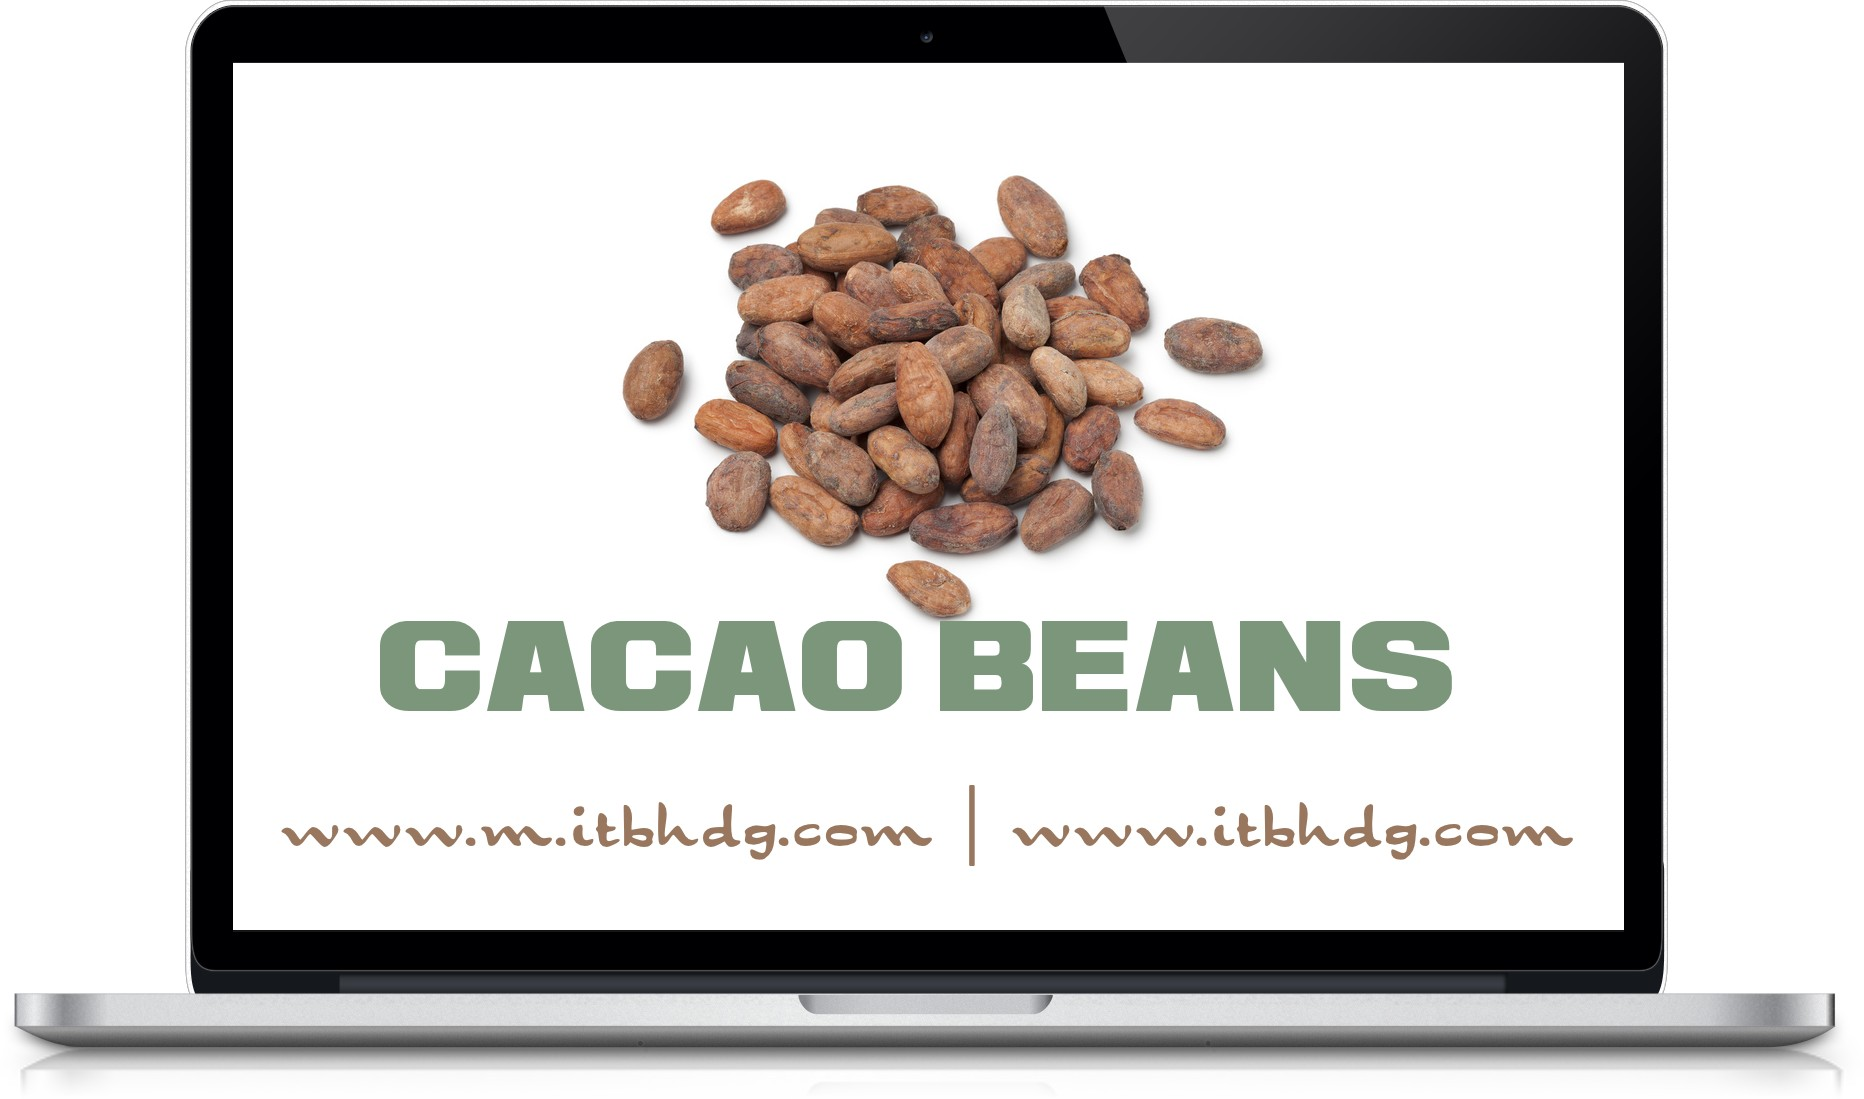 Cacao, Cocoa, cacao beans, cacao nibs, cocoa powder, cocoa butter, cocoa liquor | www.m.itbhdg.com | www.itbhdg.com